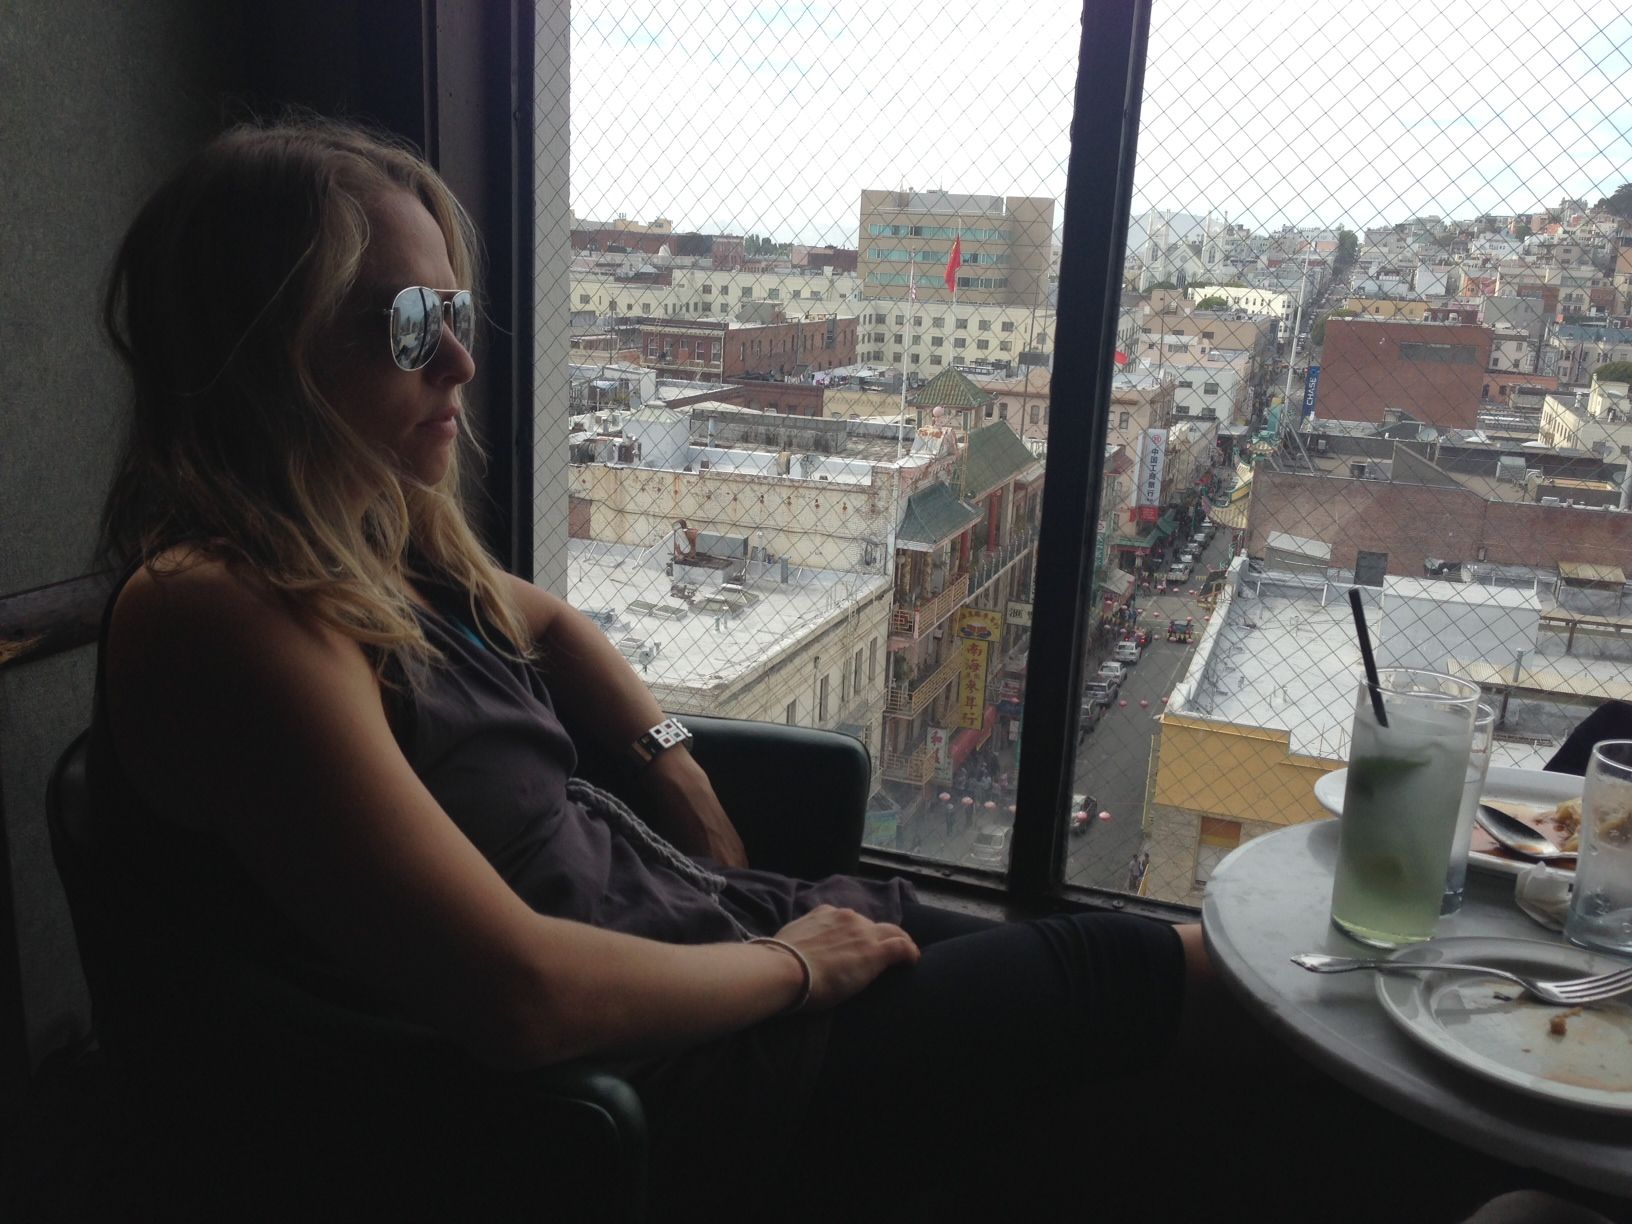 Contemplating life in SF from the soon-to-be-defunct Empress of China